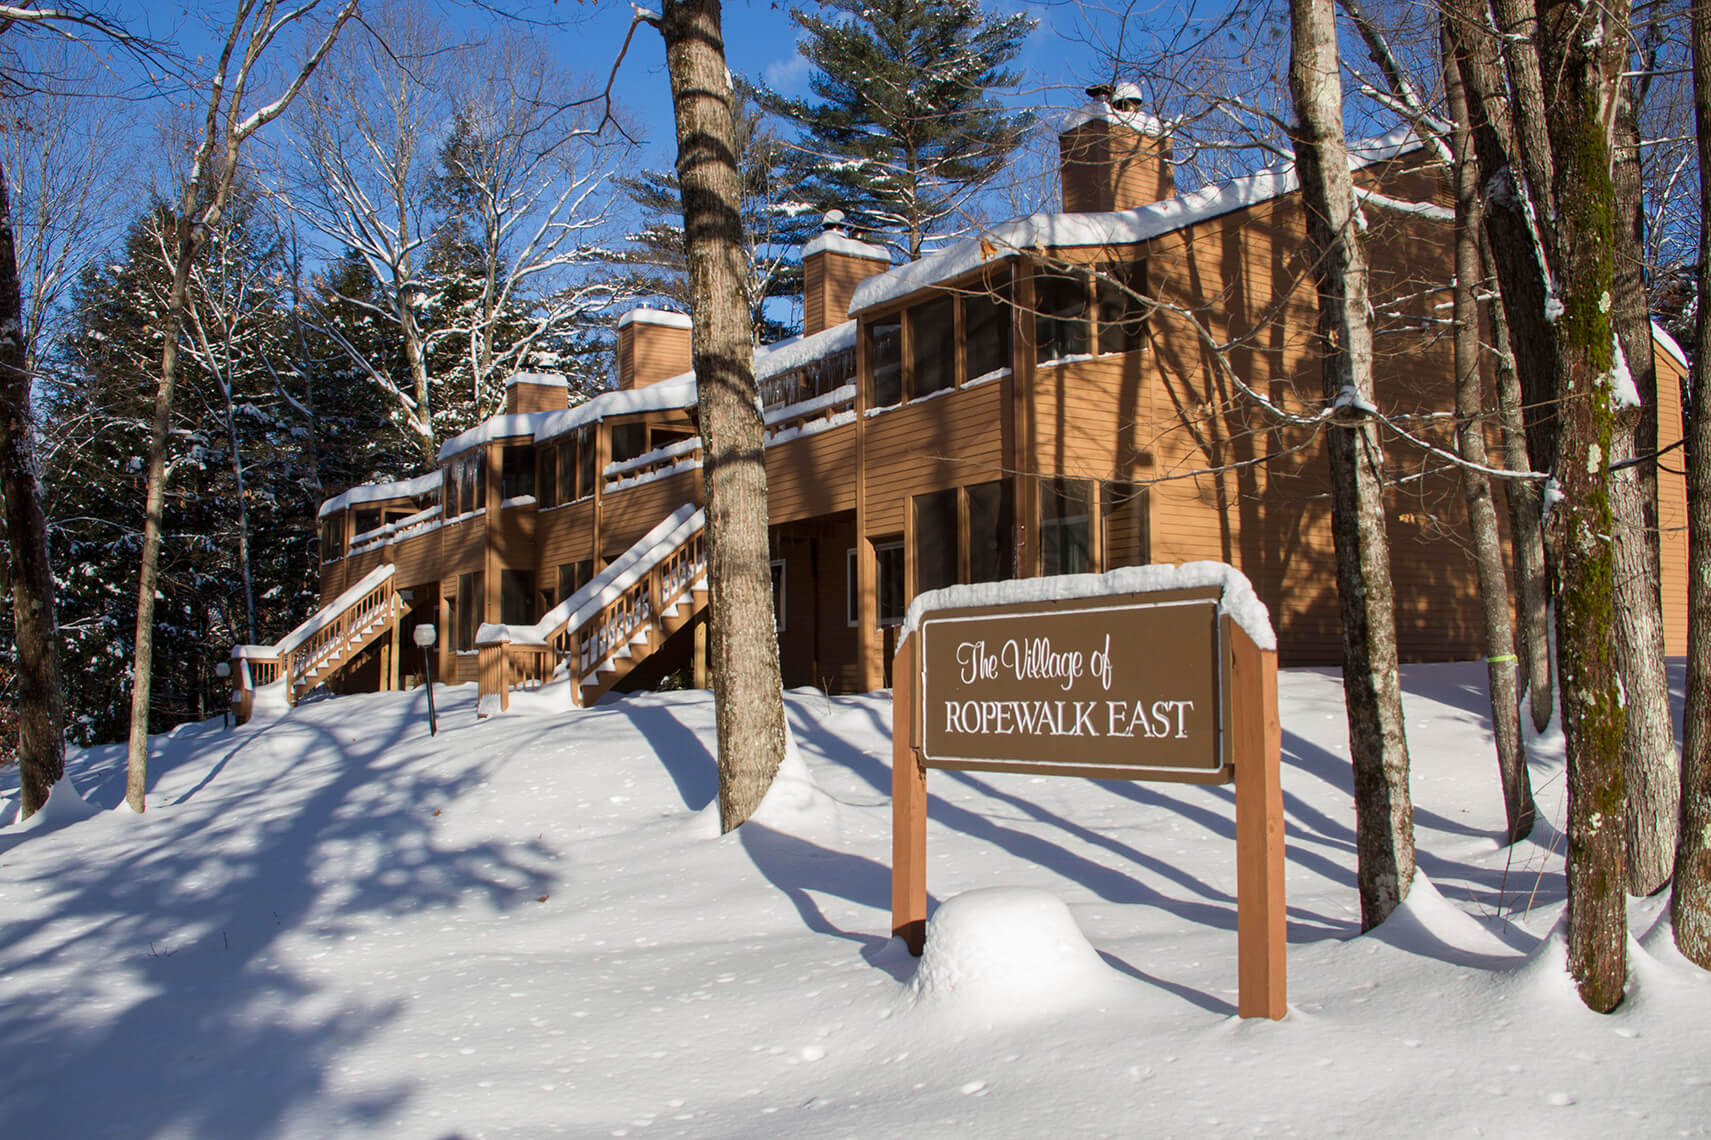 Contest for our employees: win a week vacation in the mountains of NH!